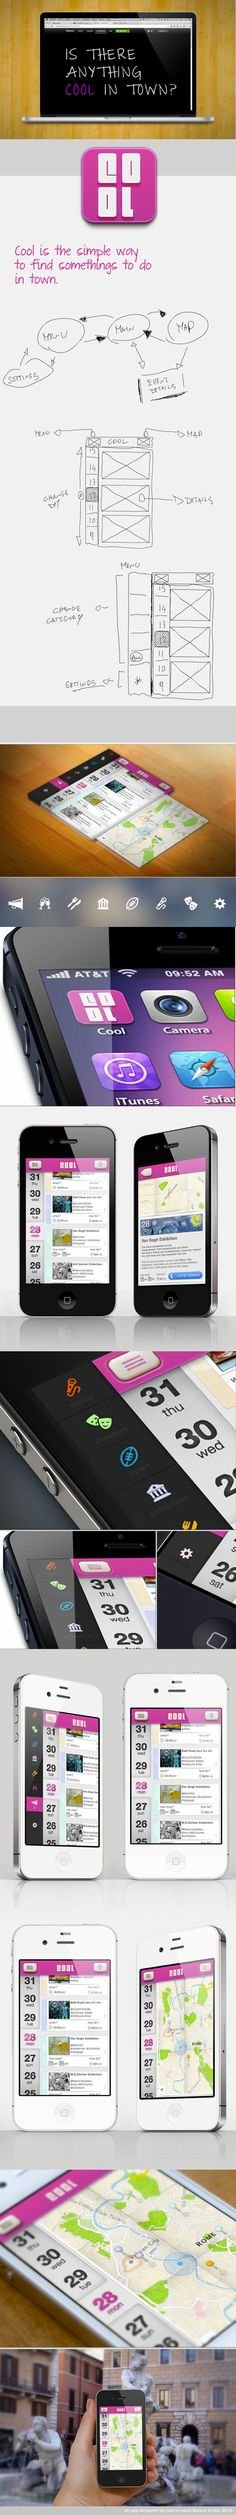 Cool - iOS Events App -